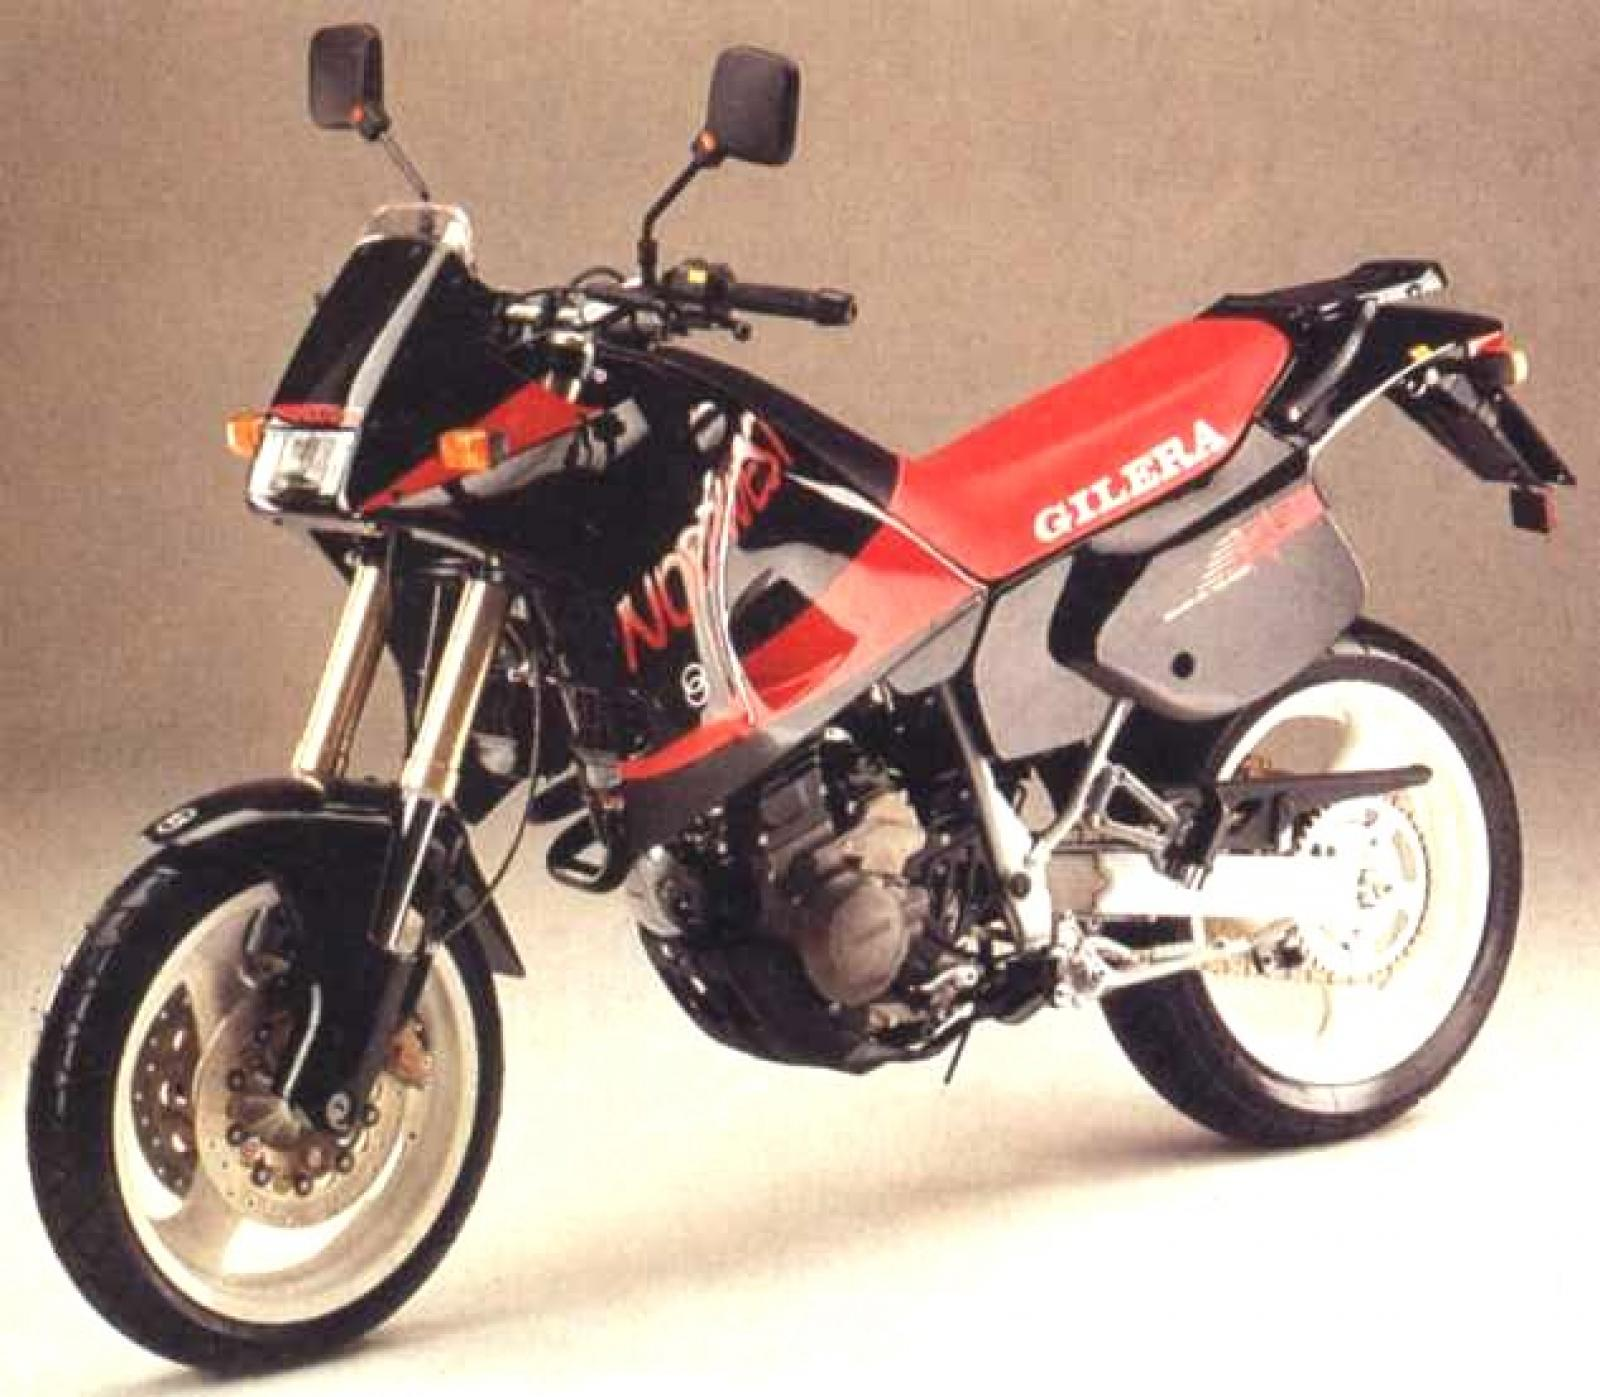 Gilera 600 Nordwest 1993 images #72965